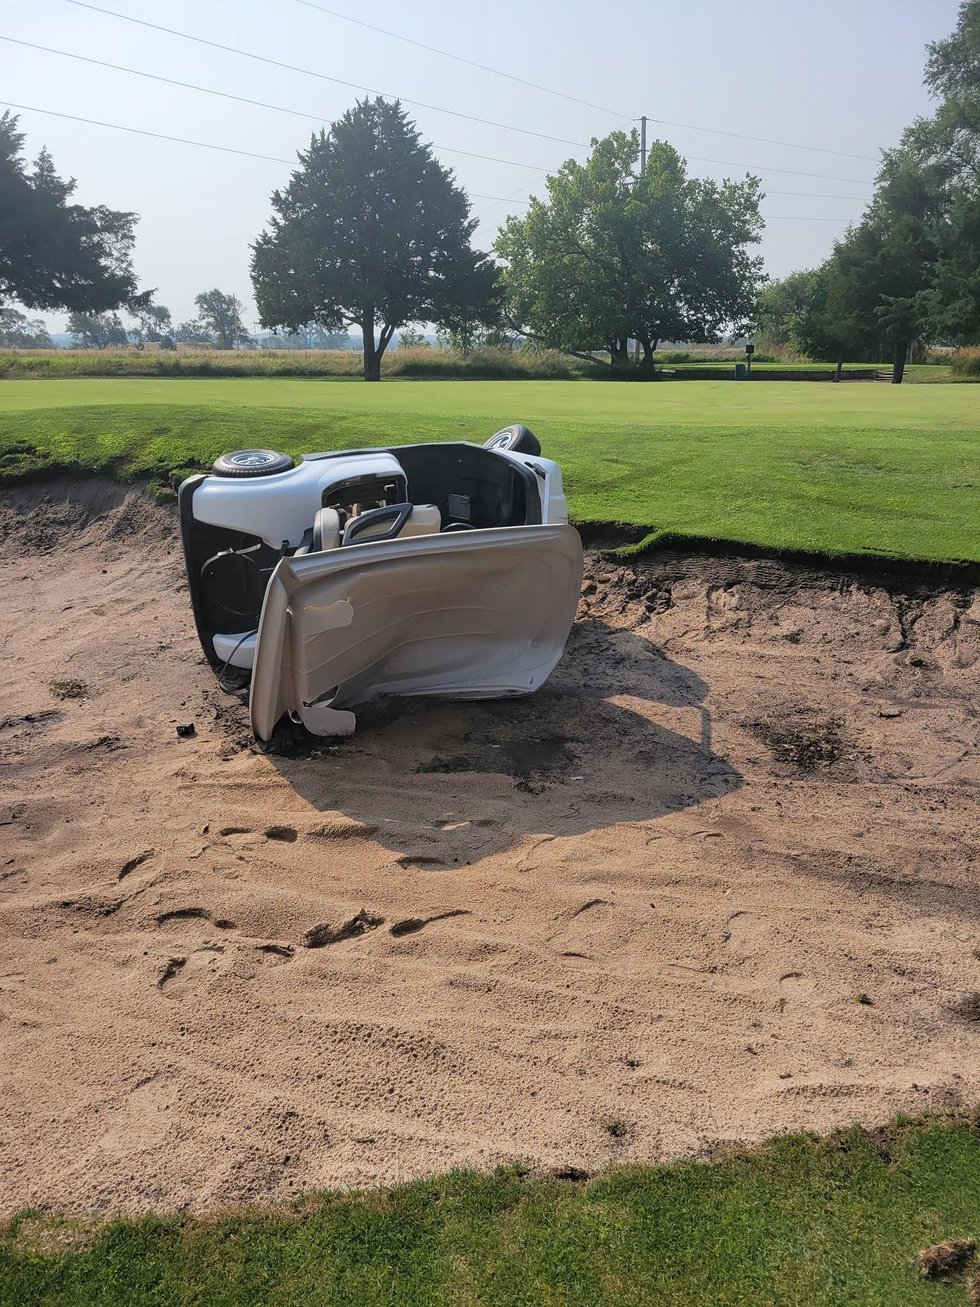 North Platte Golf Course facing thousands of dollars in damage